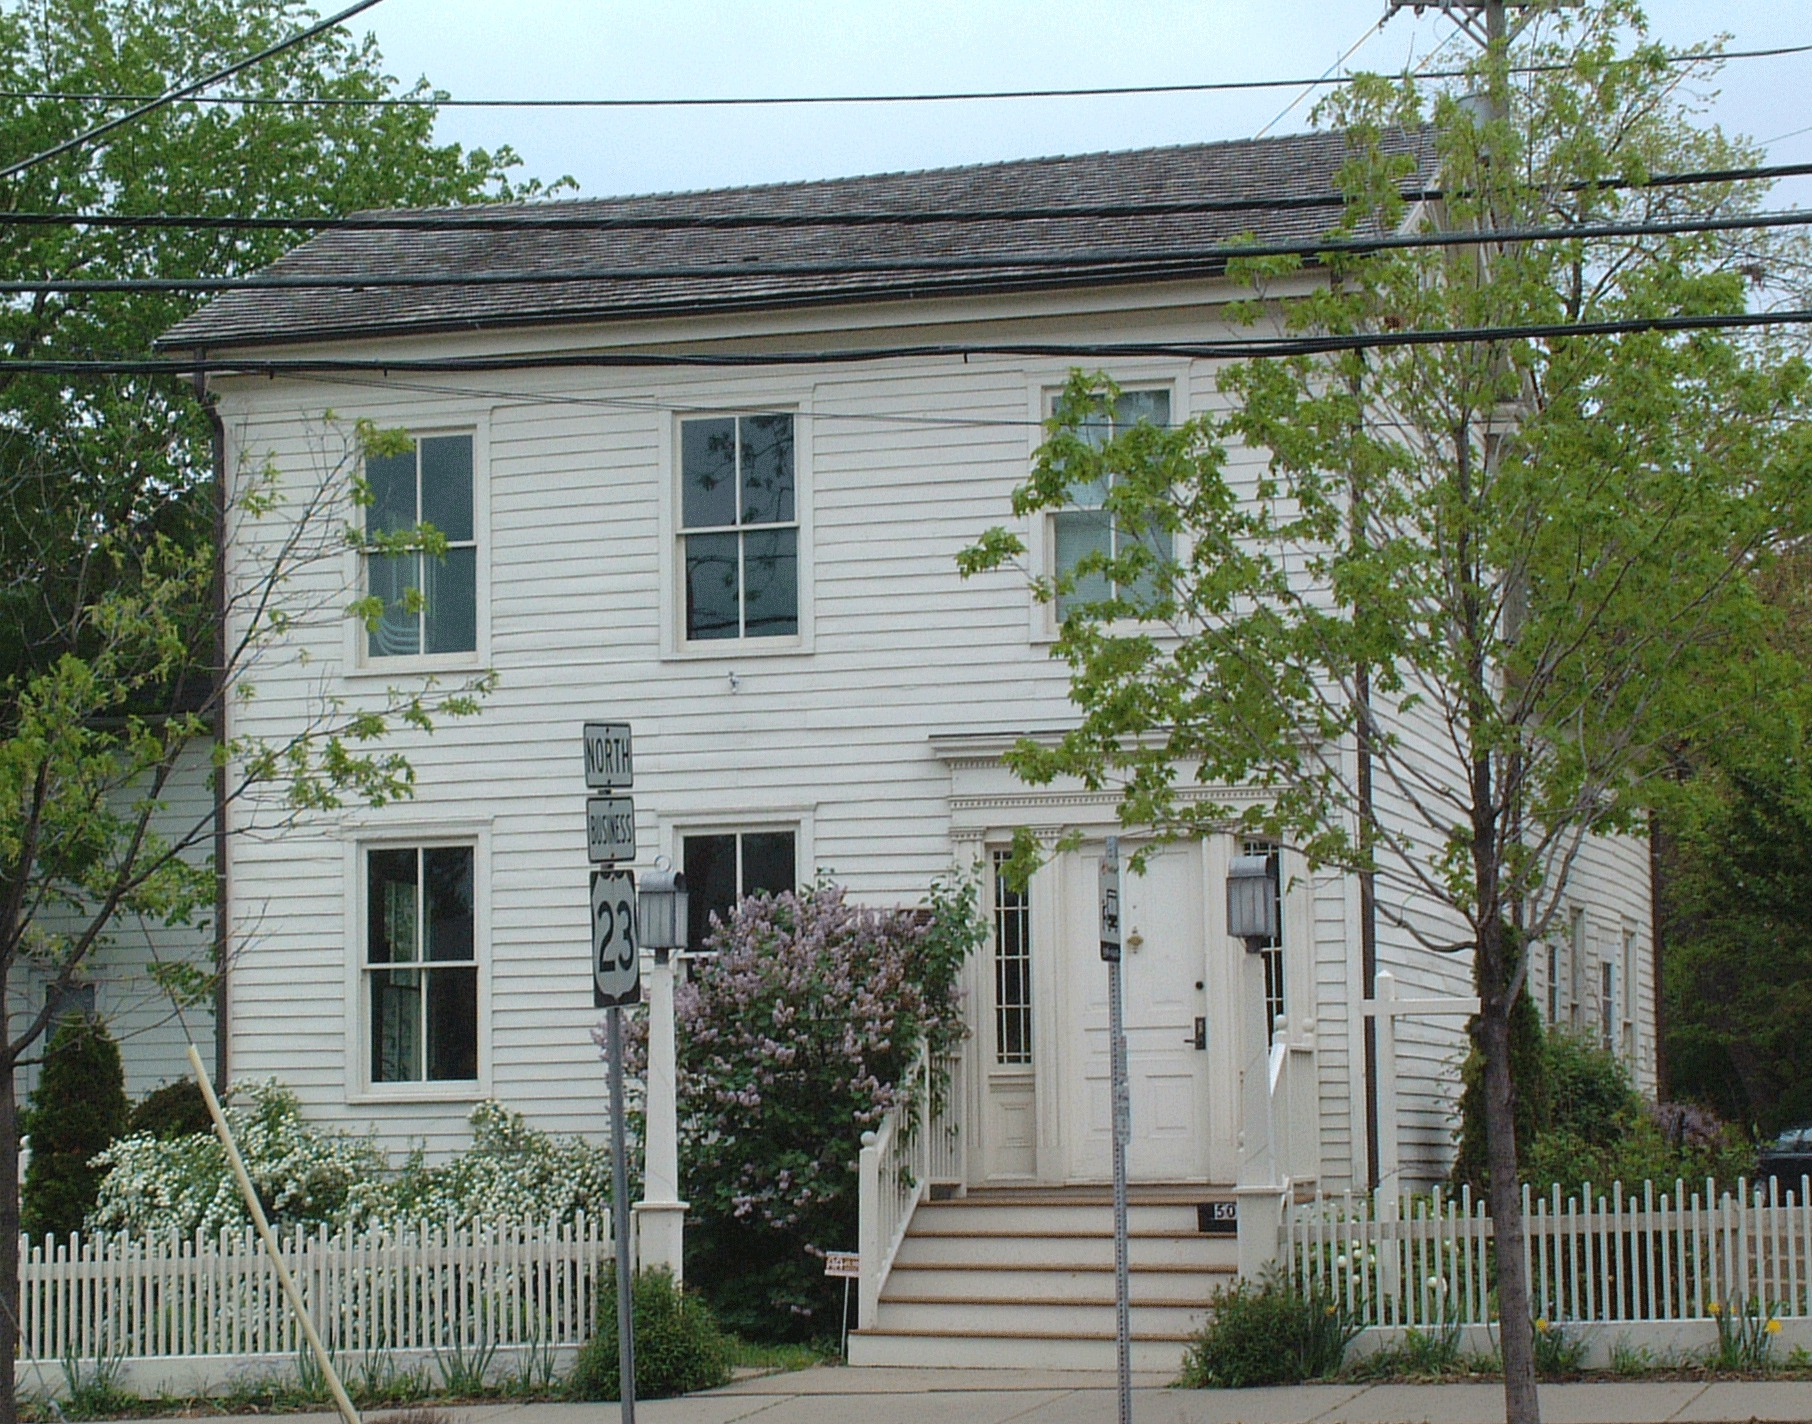 The Museum on Main Street is in an historic 1830s home built by the Kellogg-Warden family